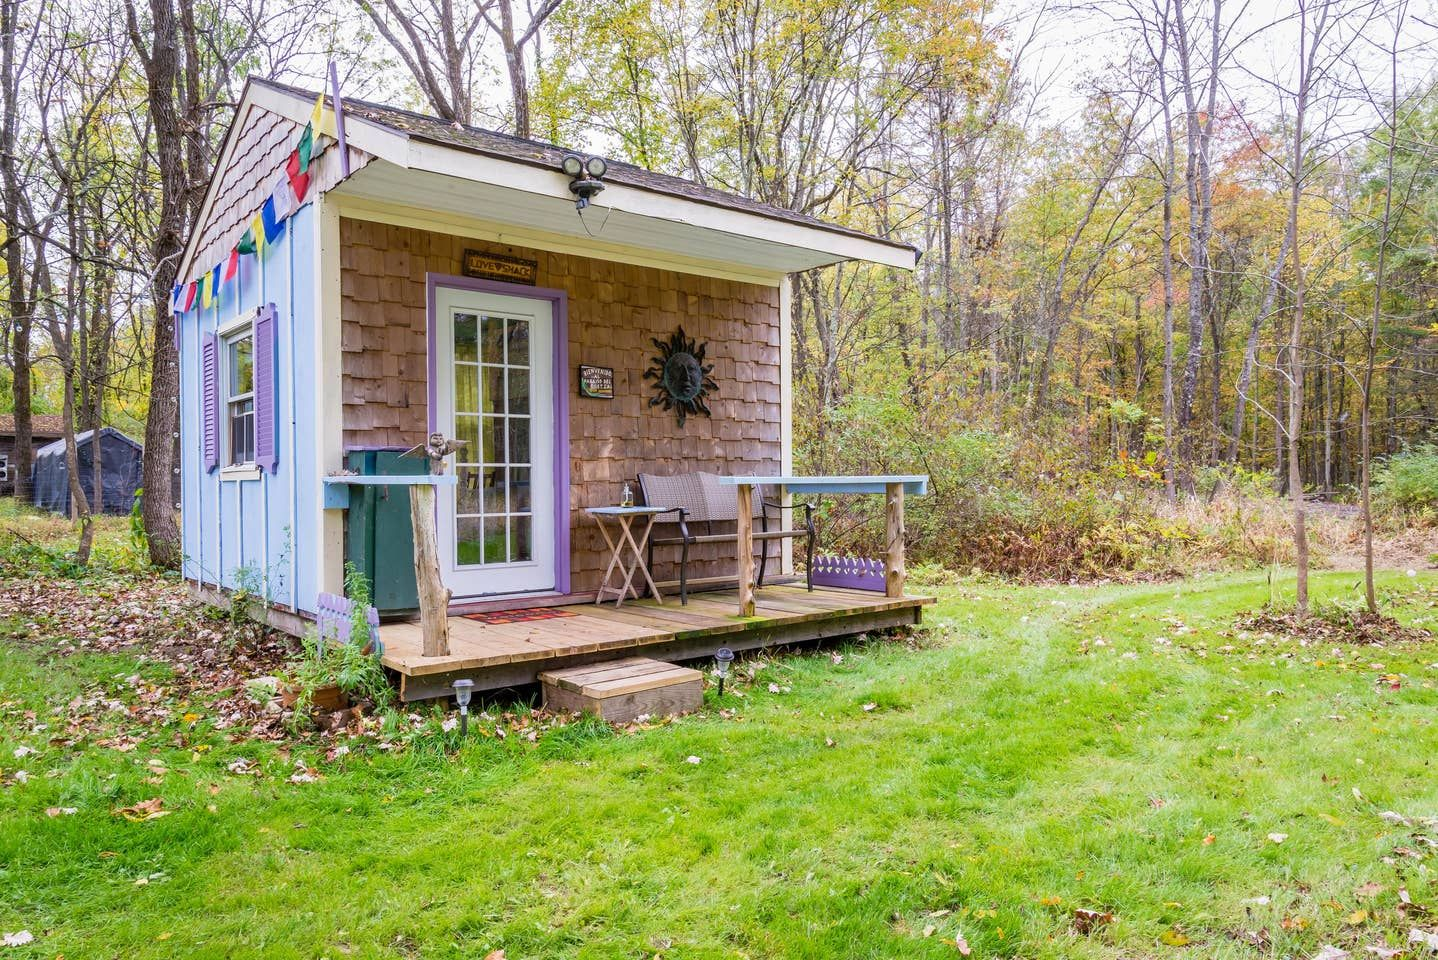 A love shack for shed living in NY